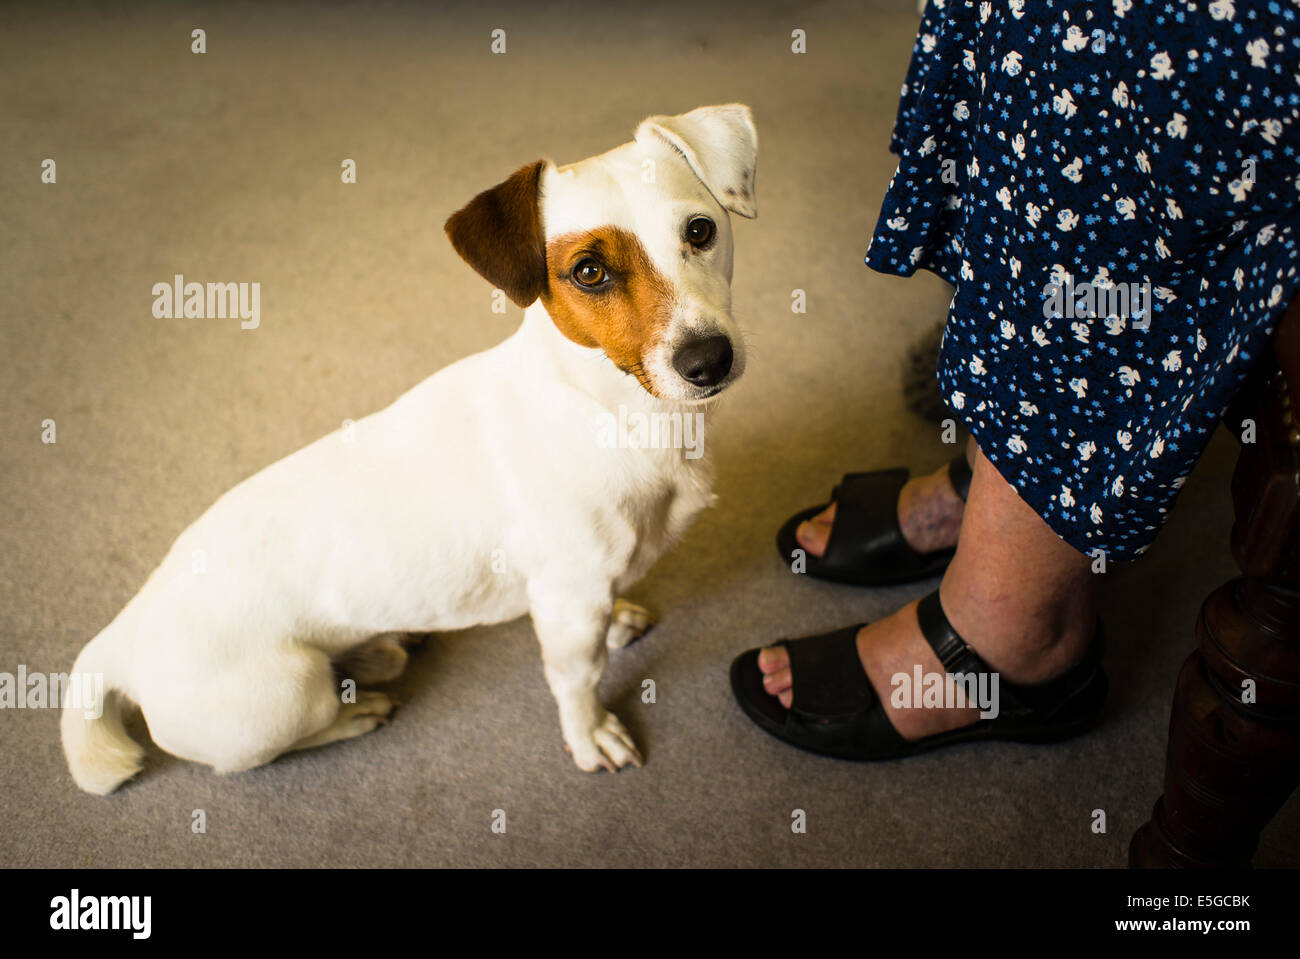 An alert Jack Russell dog at the feet of a woman indoors - Stock Image